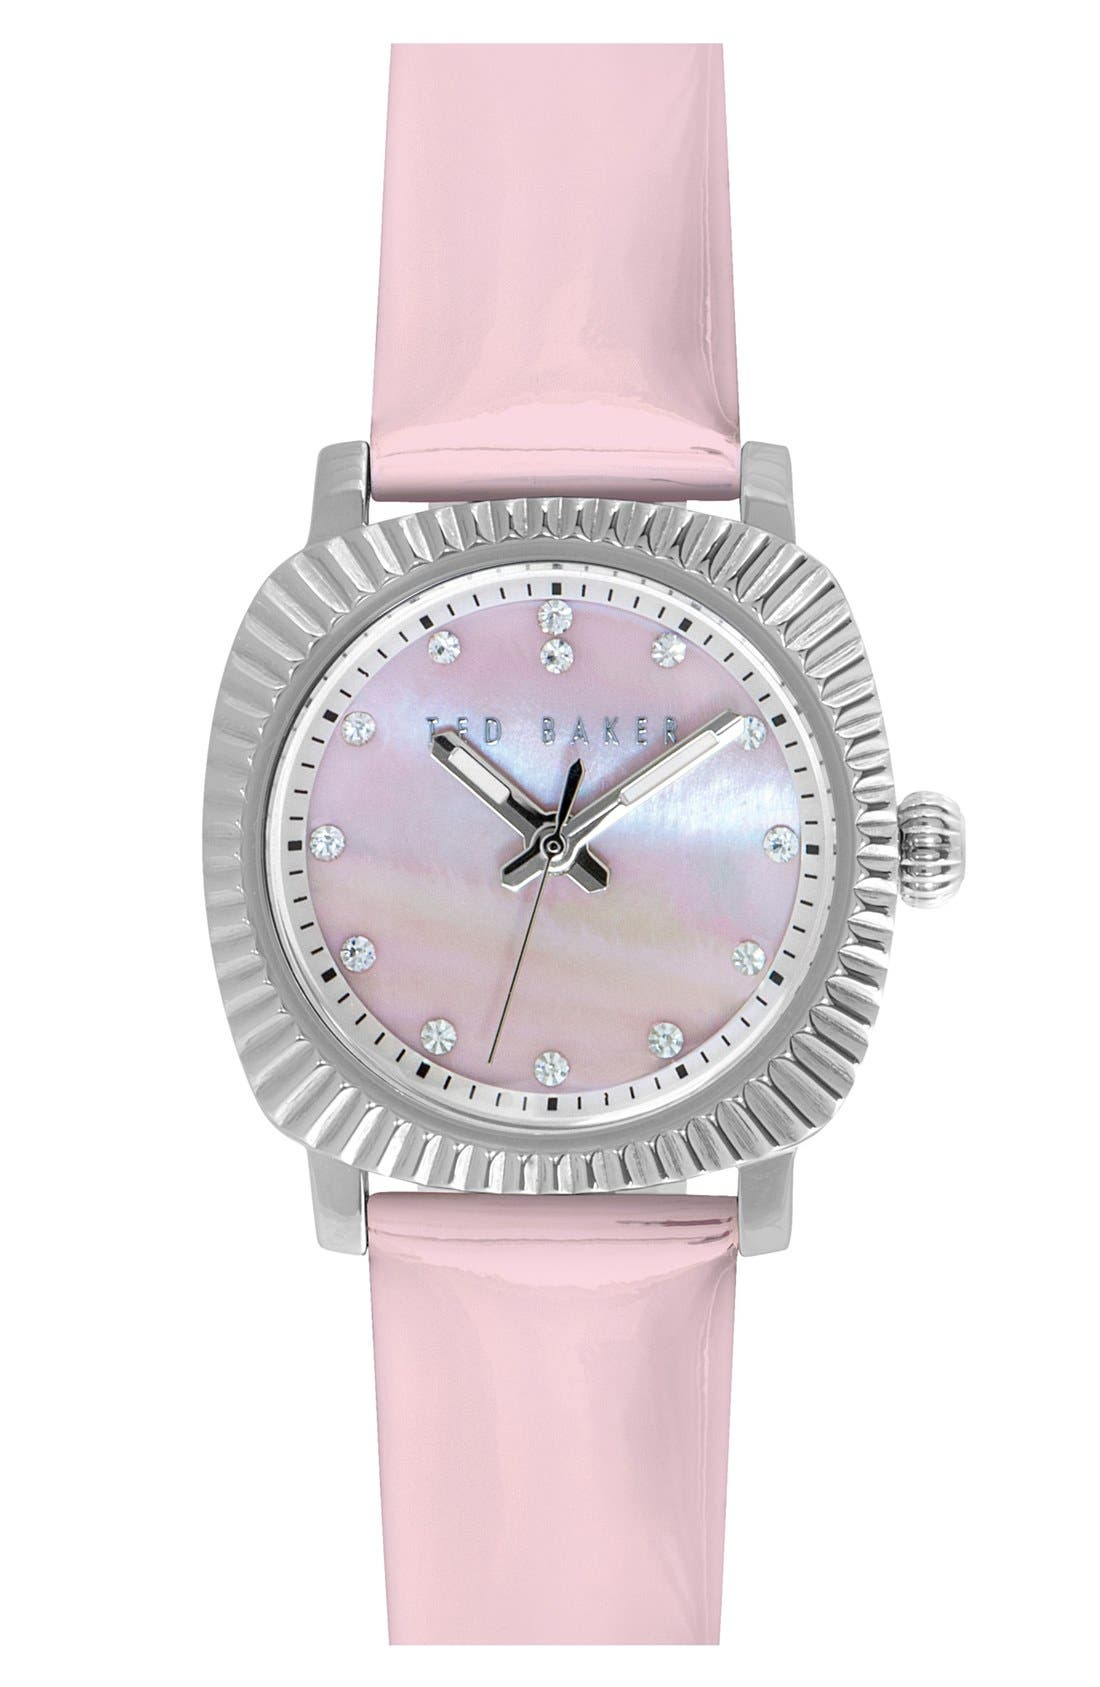 Main Image - Ted Baker London 'Mini Jewels' Crystal Index Patent Leather Strap Watch, 26mm